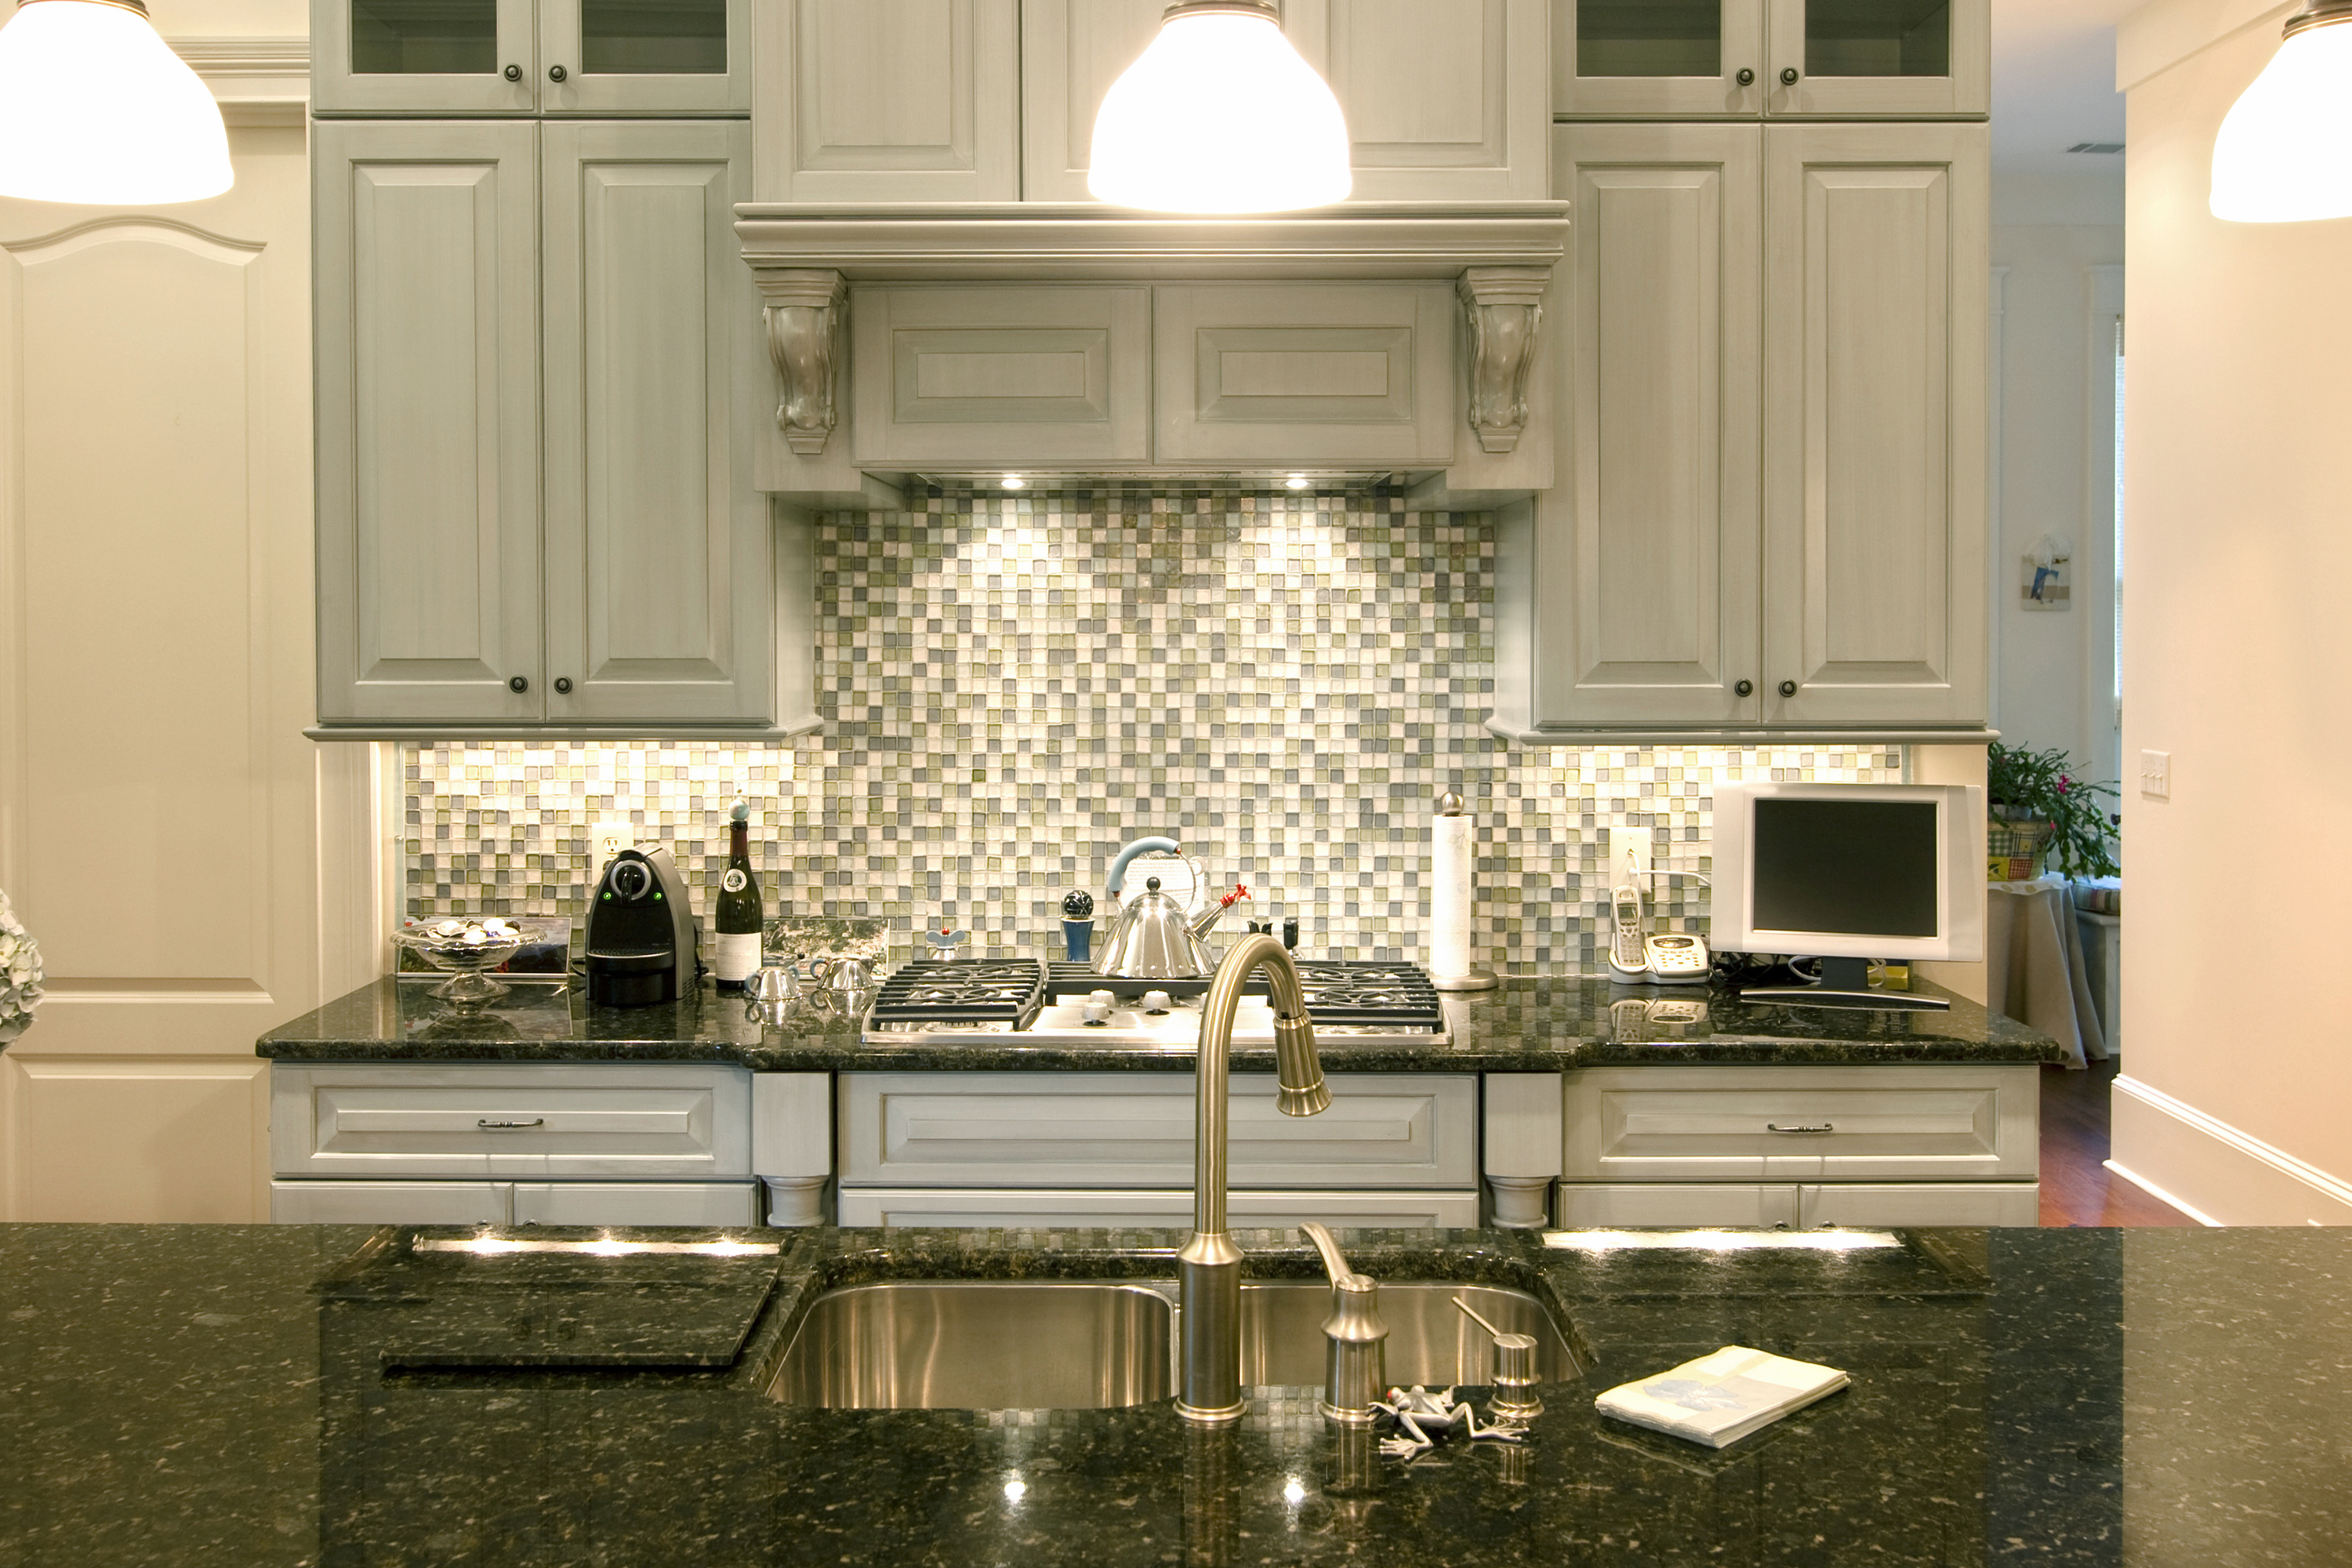 Granite Countertops Colors Kitchen The Best Backsplash Ideas For Black Granite Countertops Home And